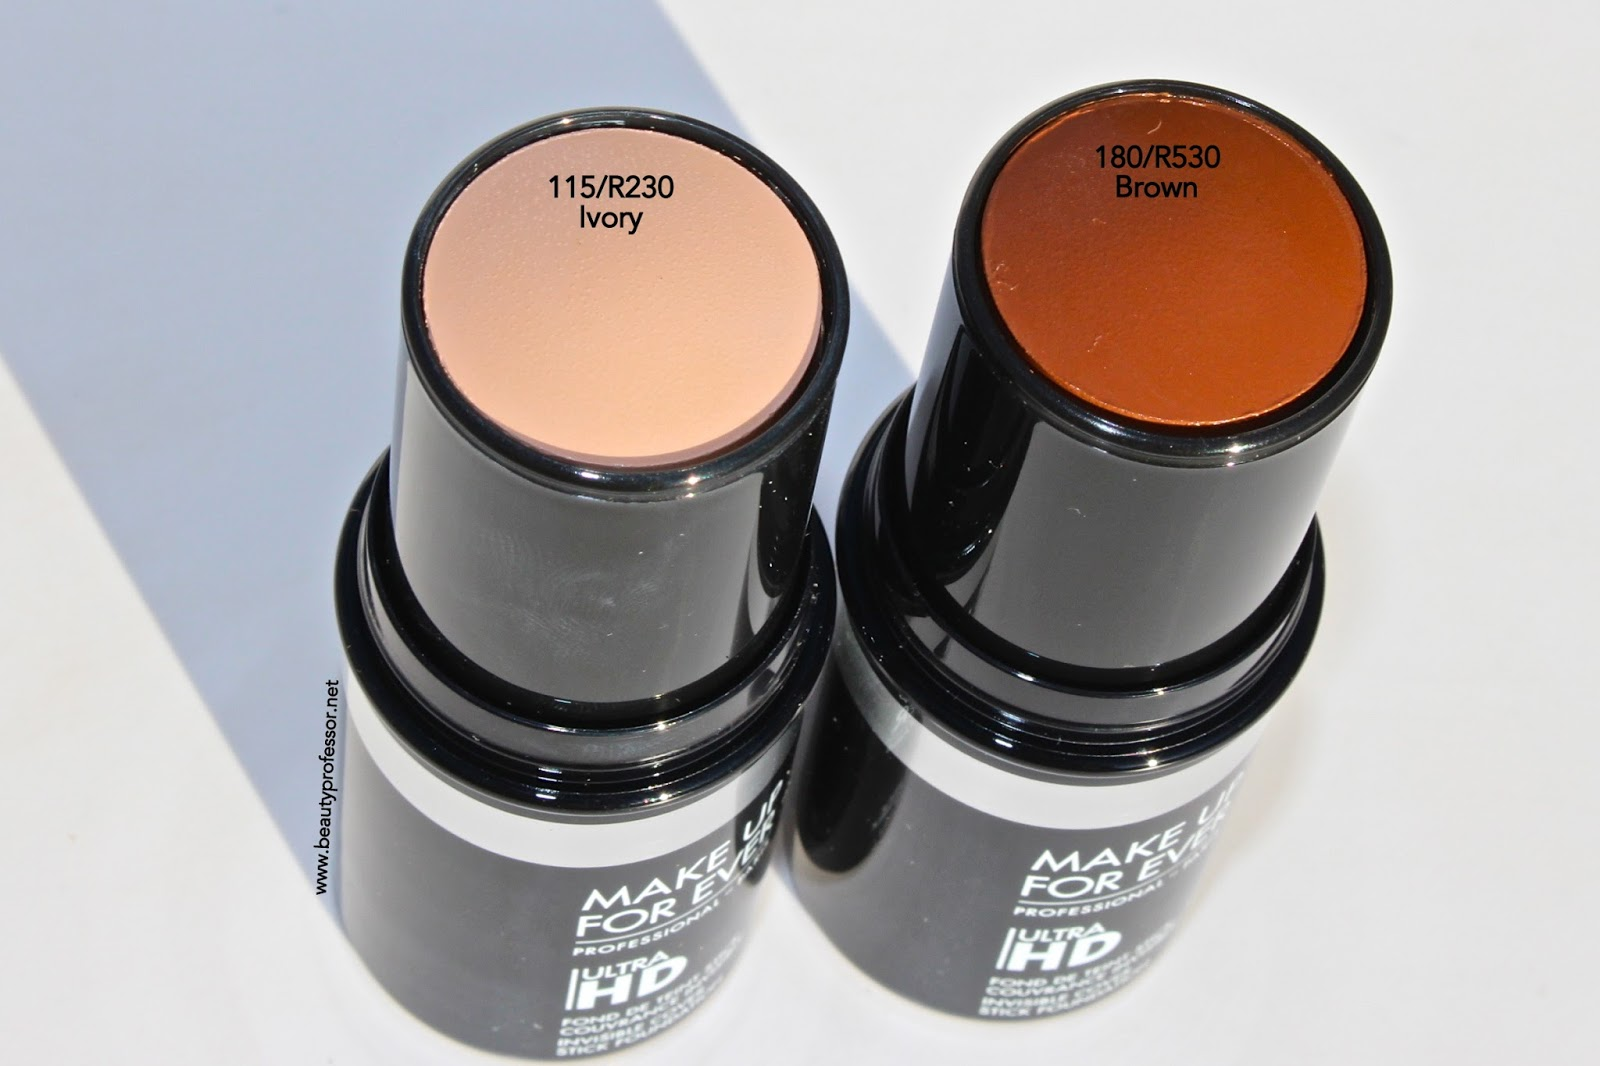 Makeup forever ultra hd foundation swatches